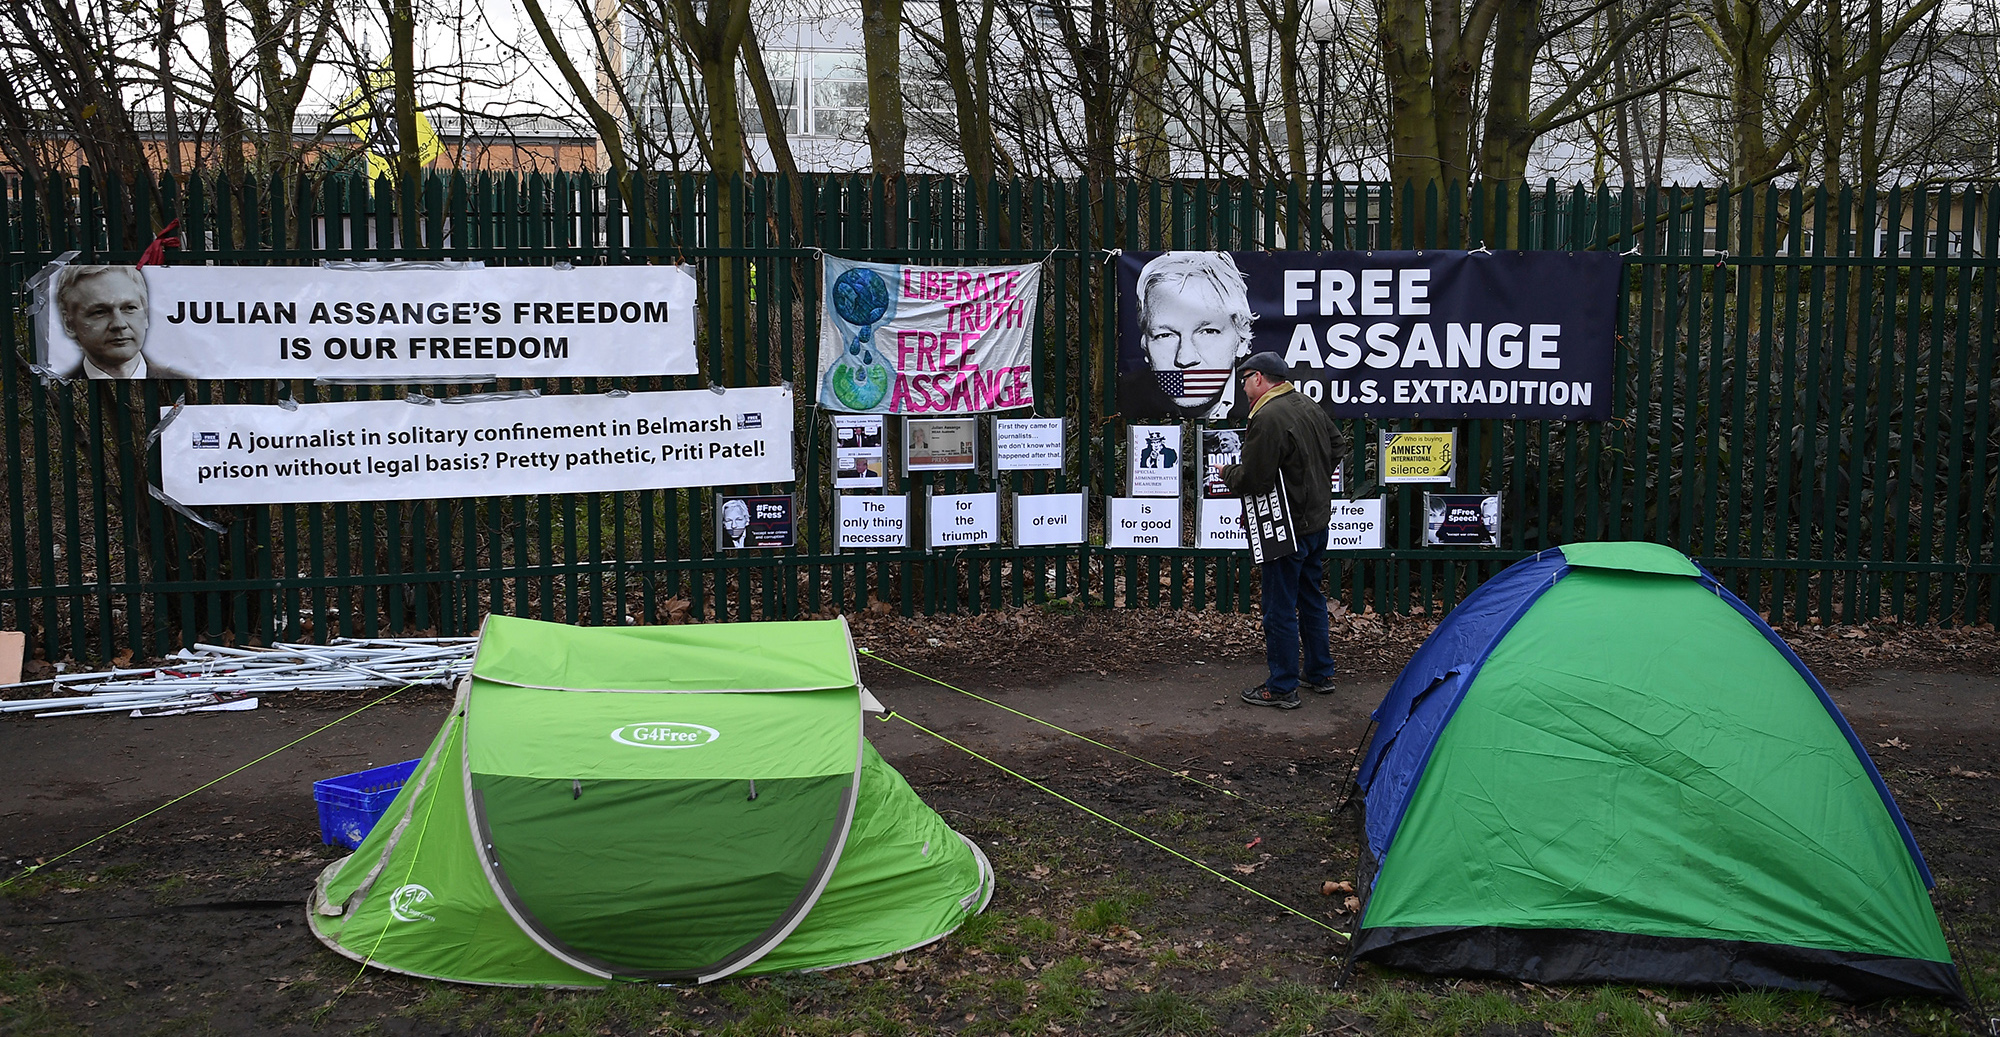 DECLASSIFIED UK: At risk from coronavirus, Julian Assange is one of just two inmates in Belmarsh maximum-security prison held for skipping bail